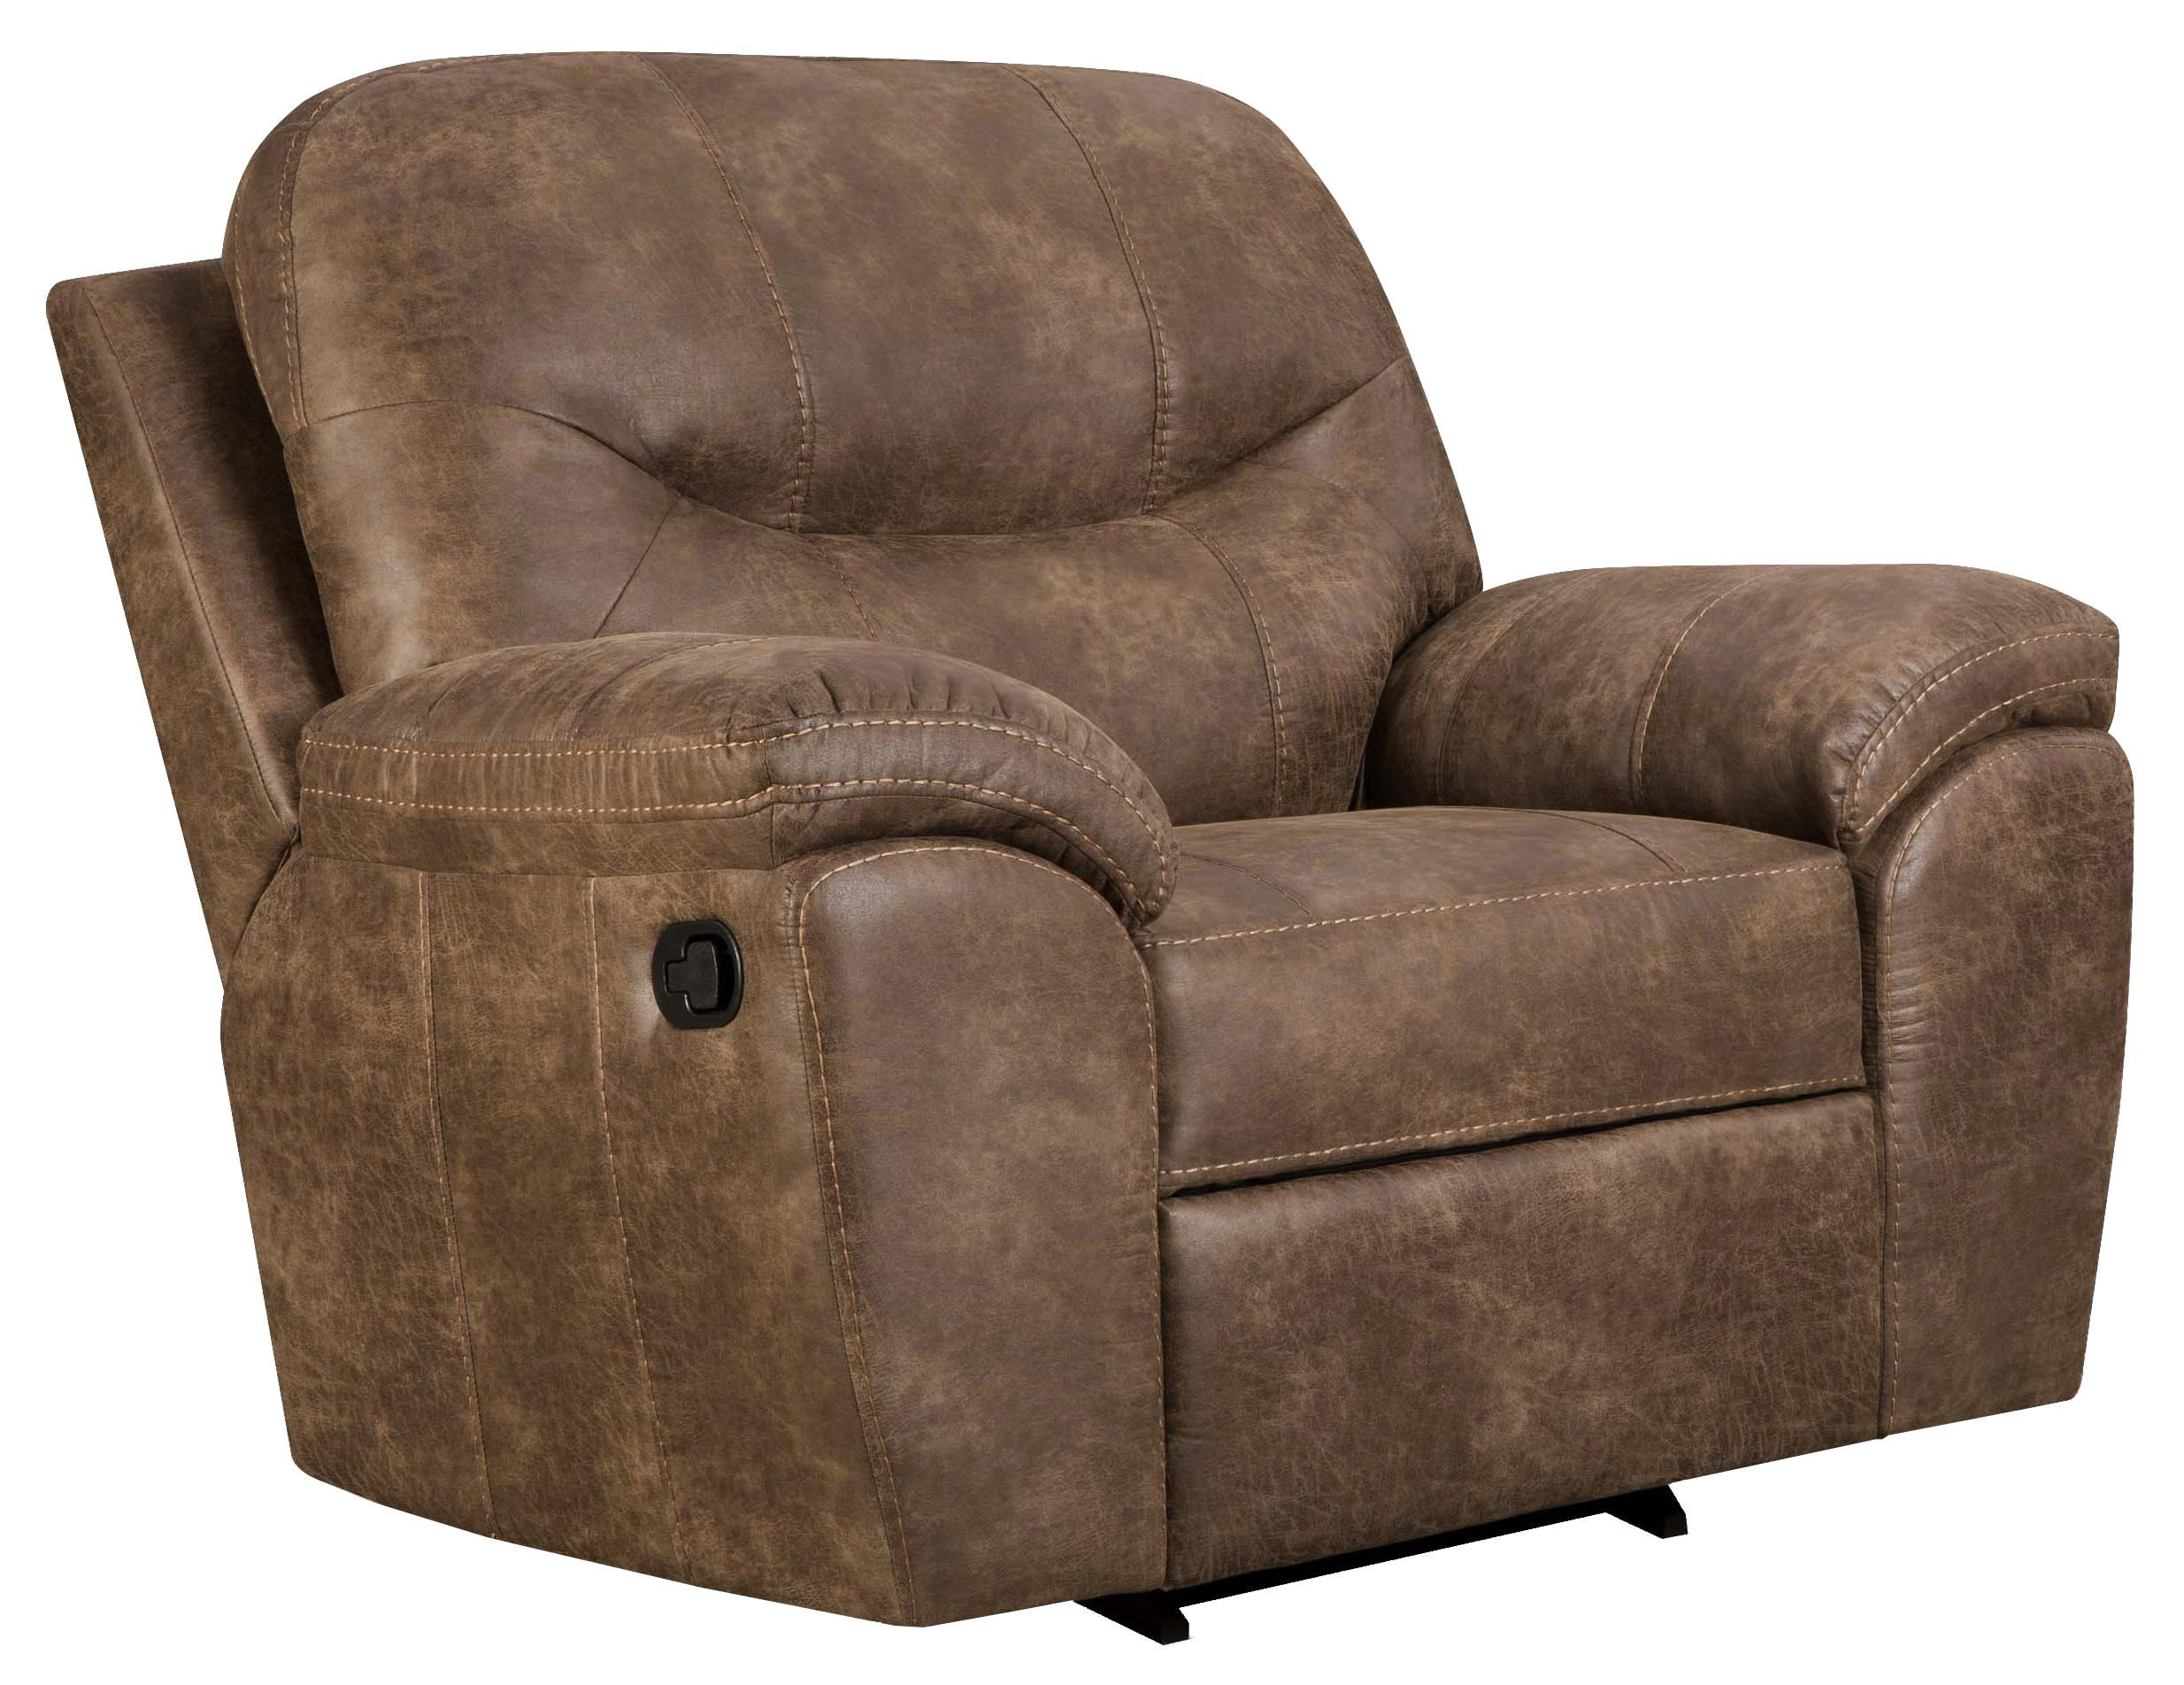 Corinthian Ulyses River Rock Recliner - Item Number: 18A1